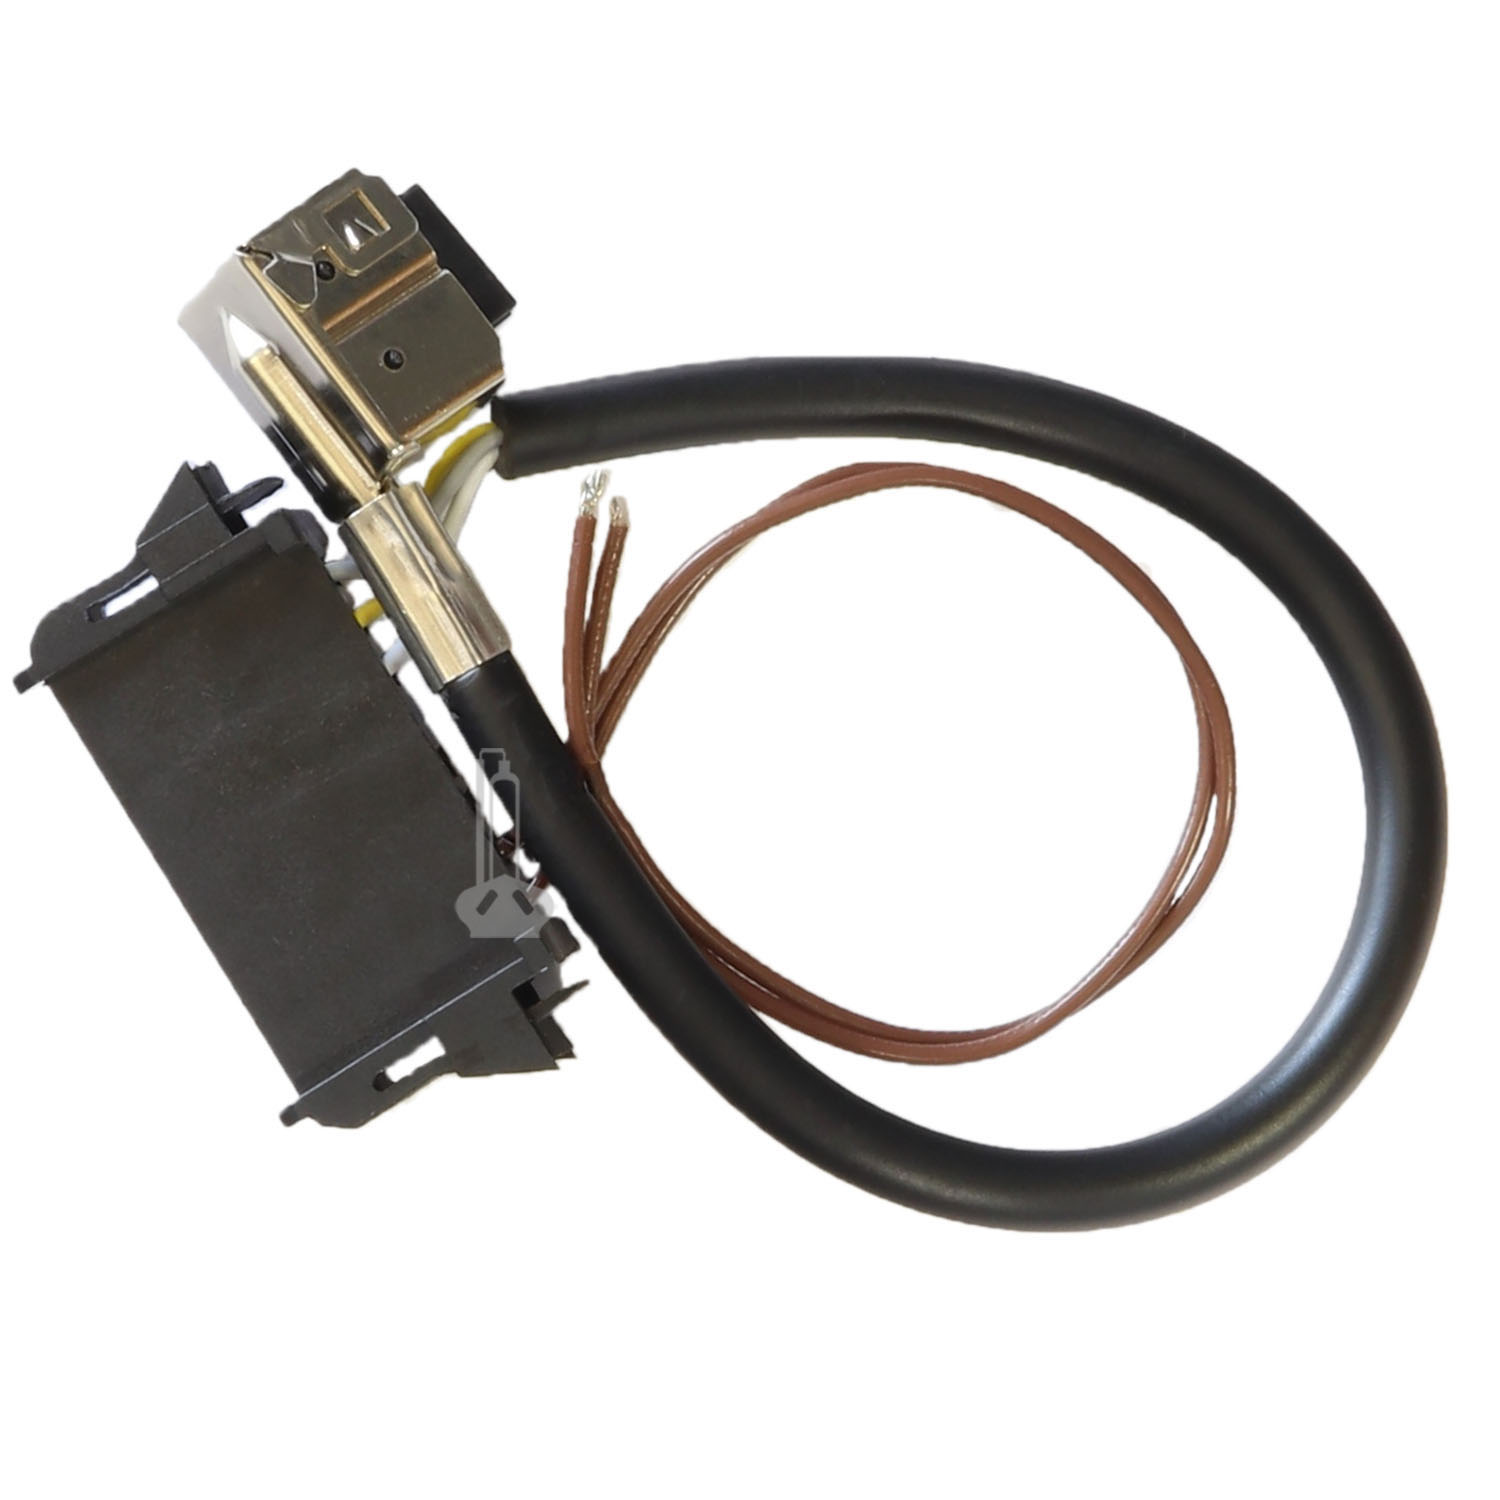 Replacement cable for Valeo 6G Xenon headlight control unit